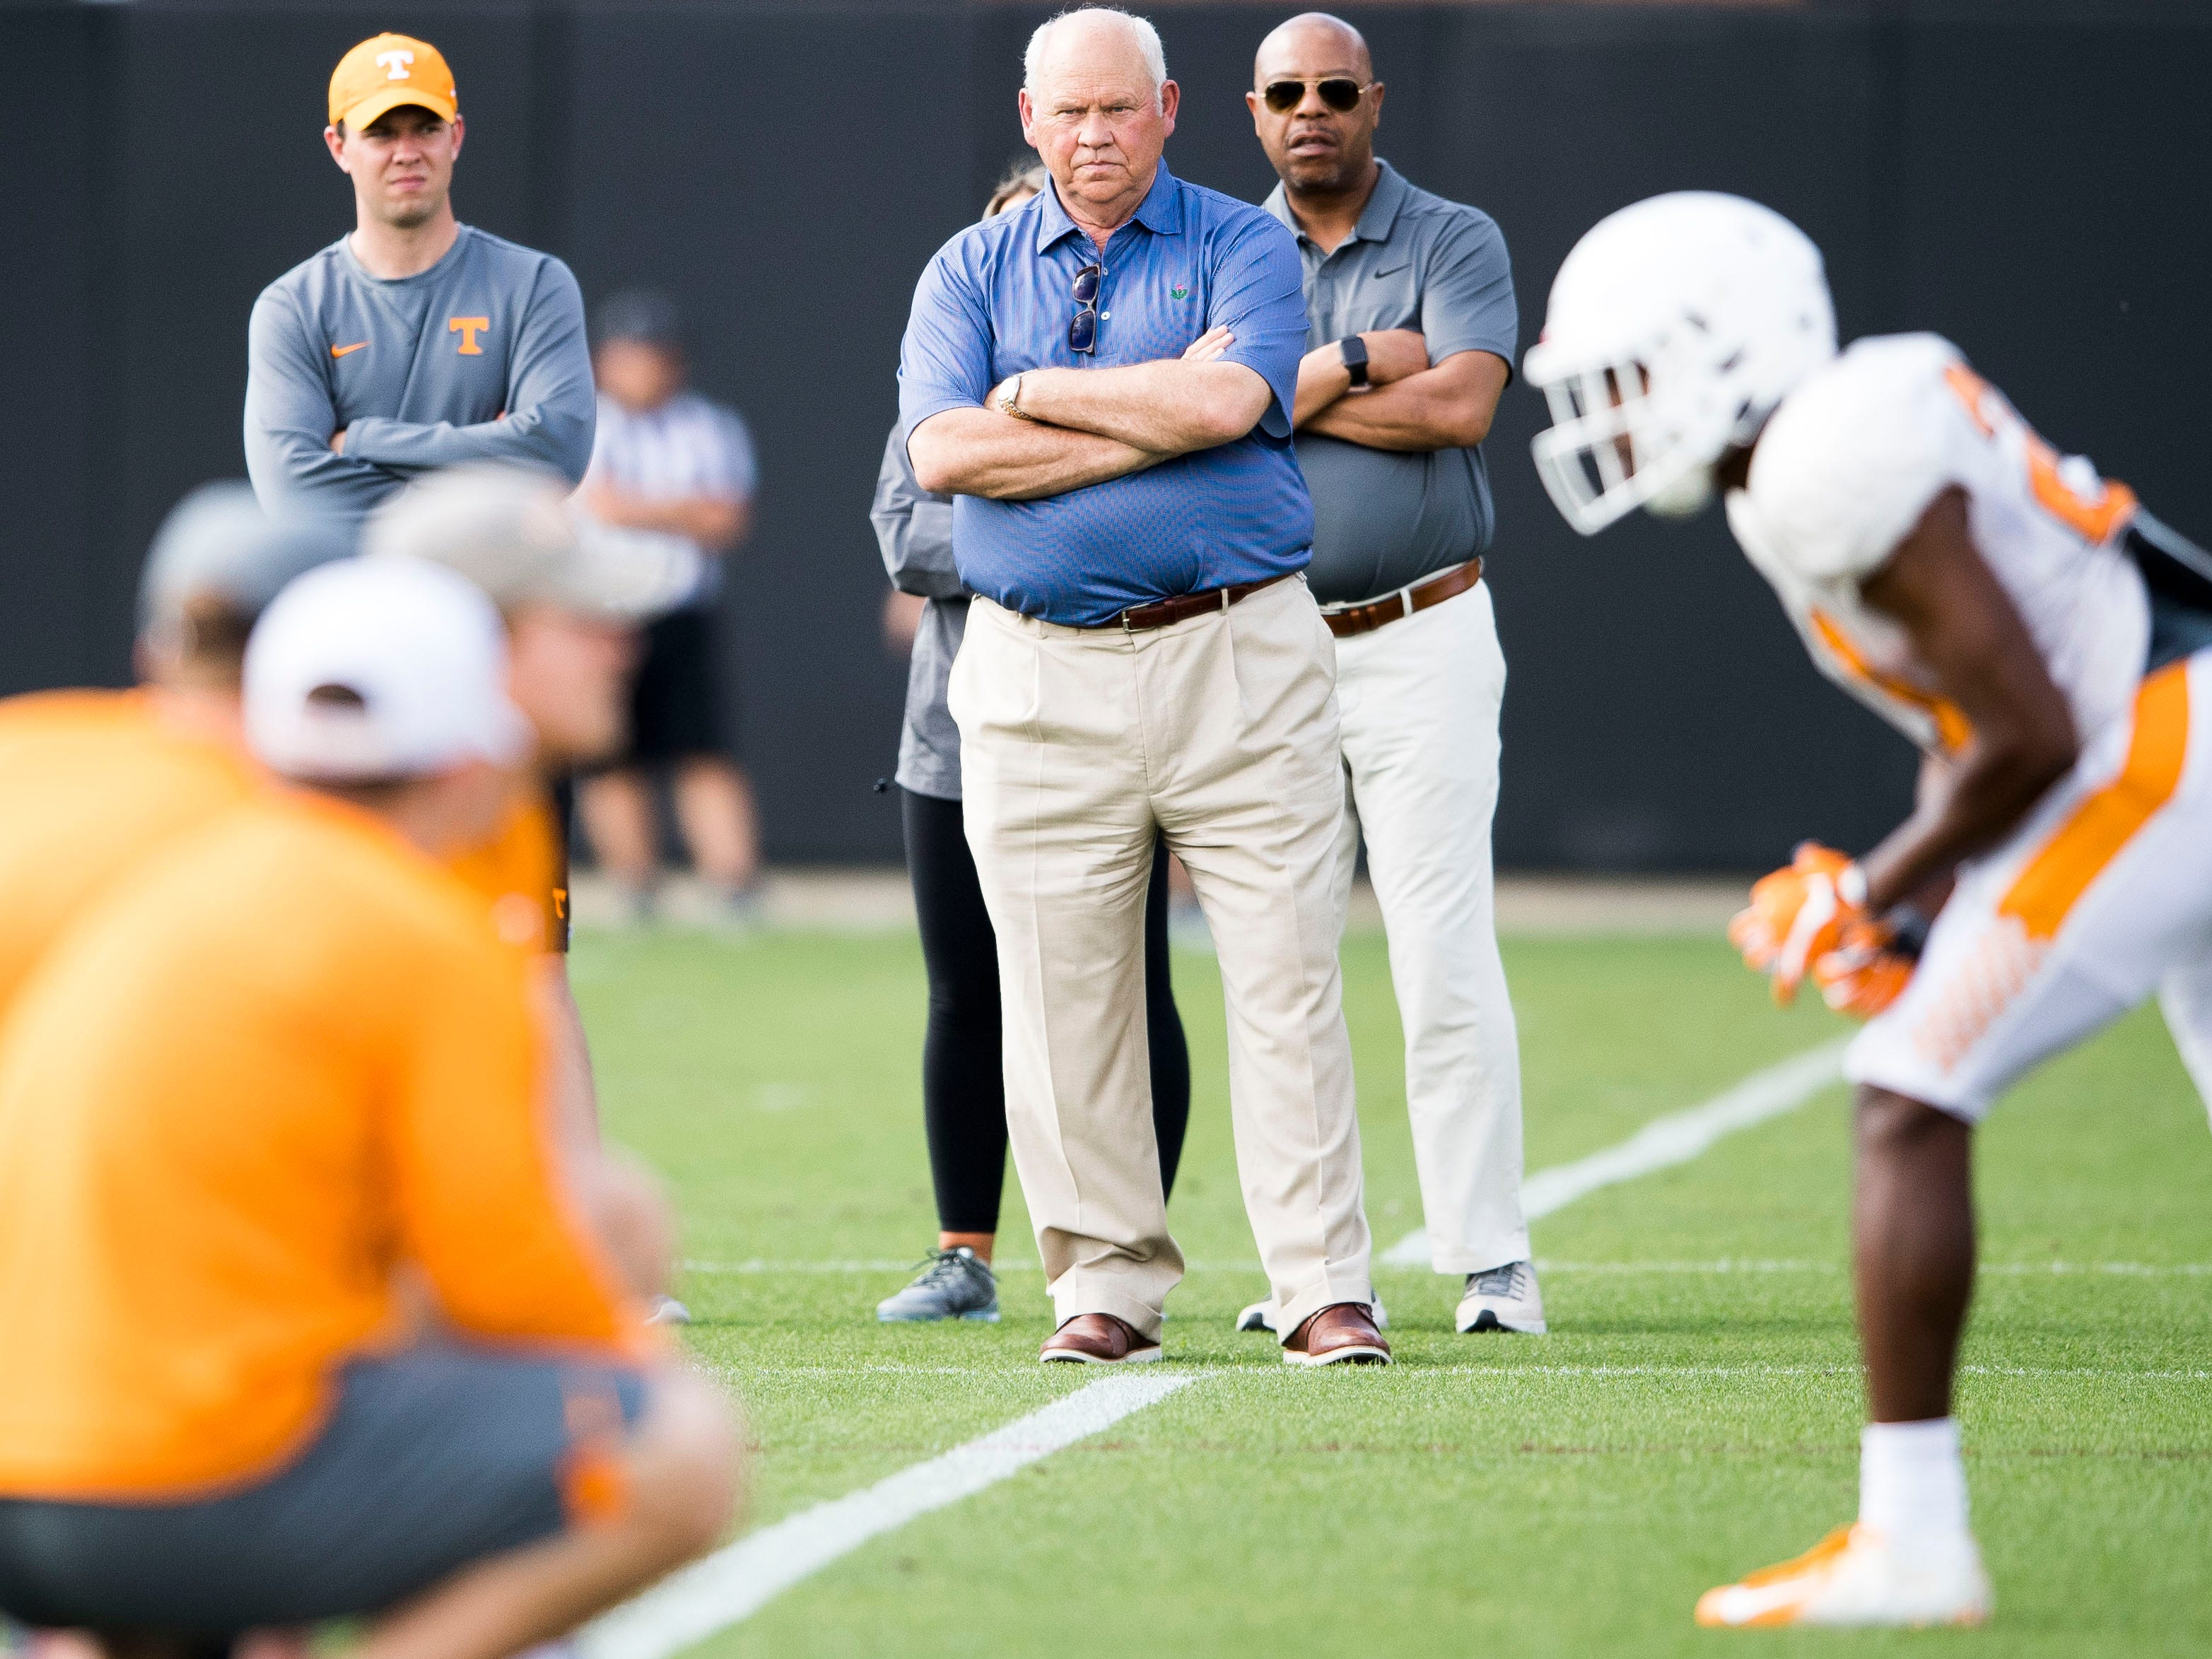 Tennessee athletic director Phillip Fulmer, center, watches the quarterbacks and wide receivers during Tennessee's afternoon football practice on Tuesday, April 9, 2019.